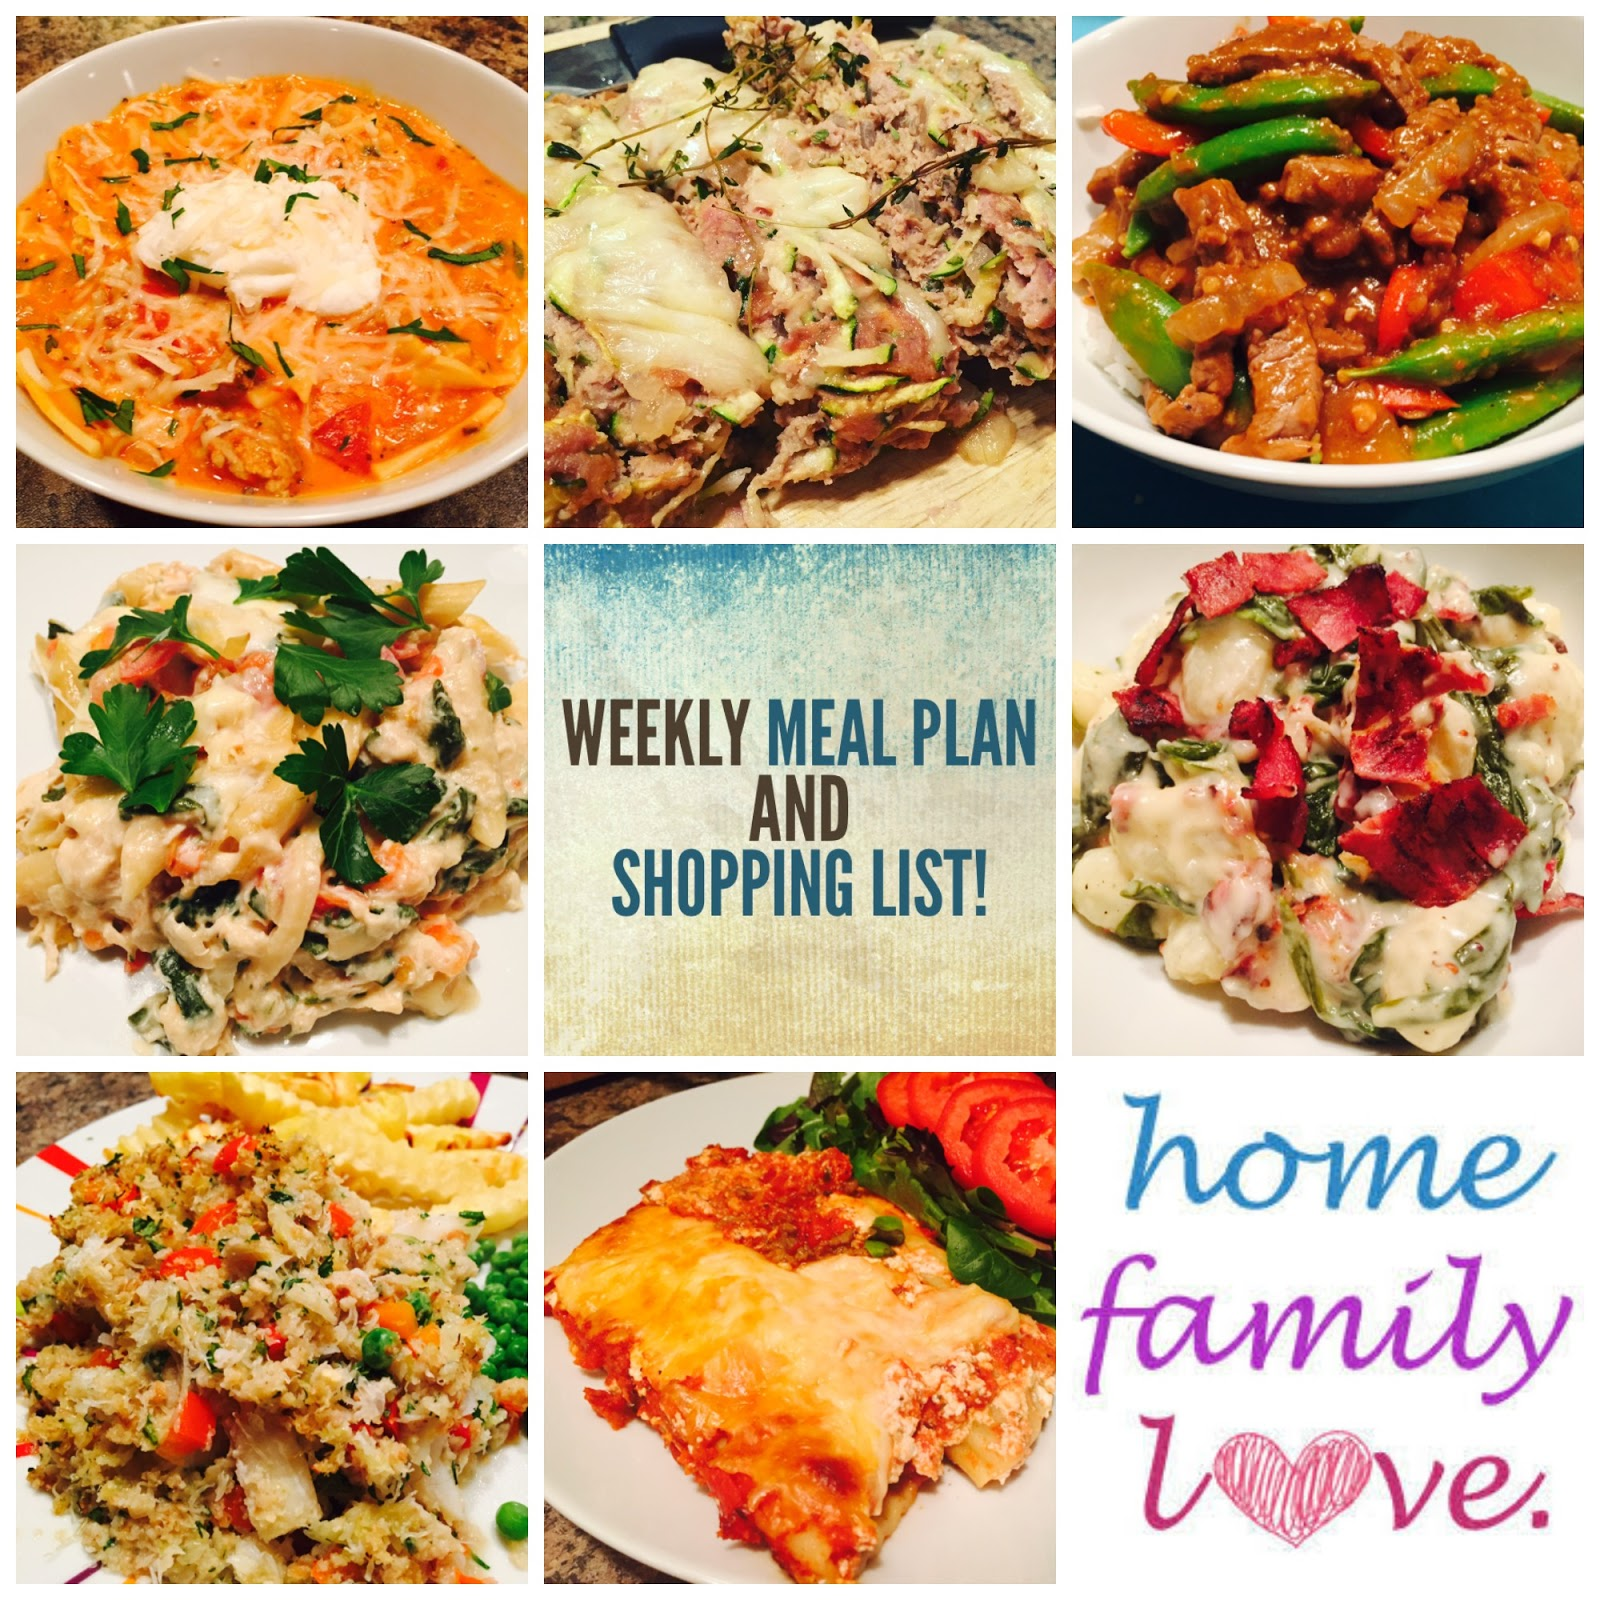 weekly meal plan and shopping list 7 family favorites